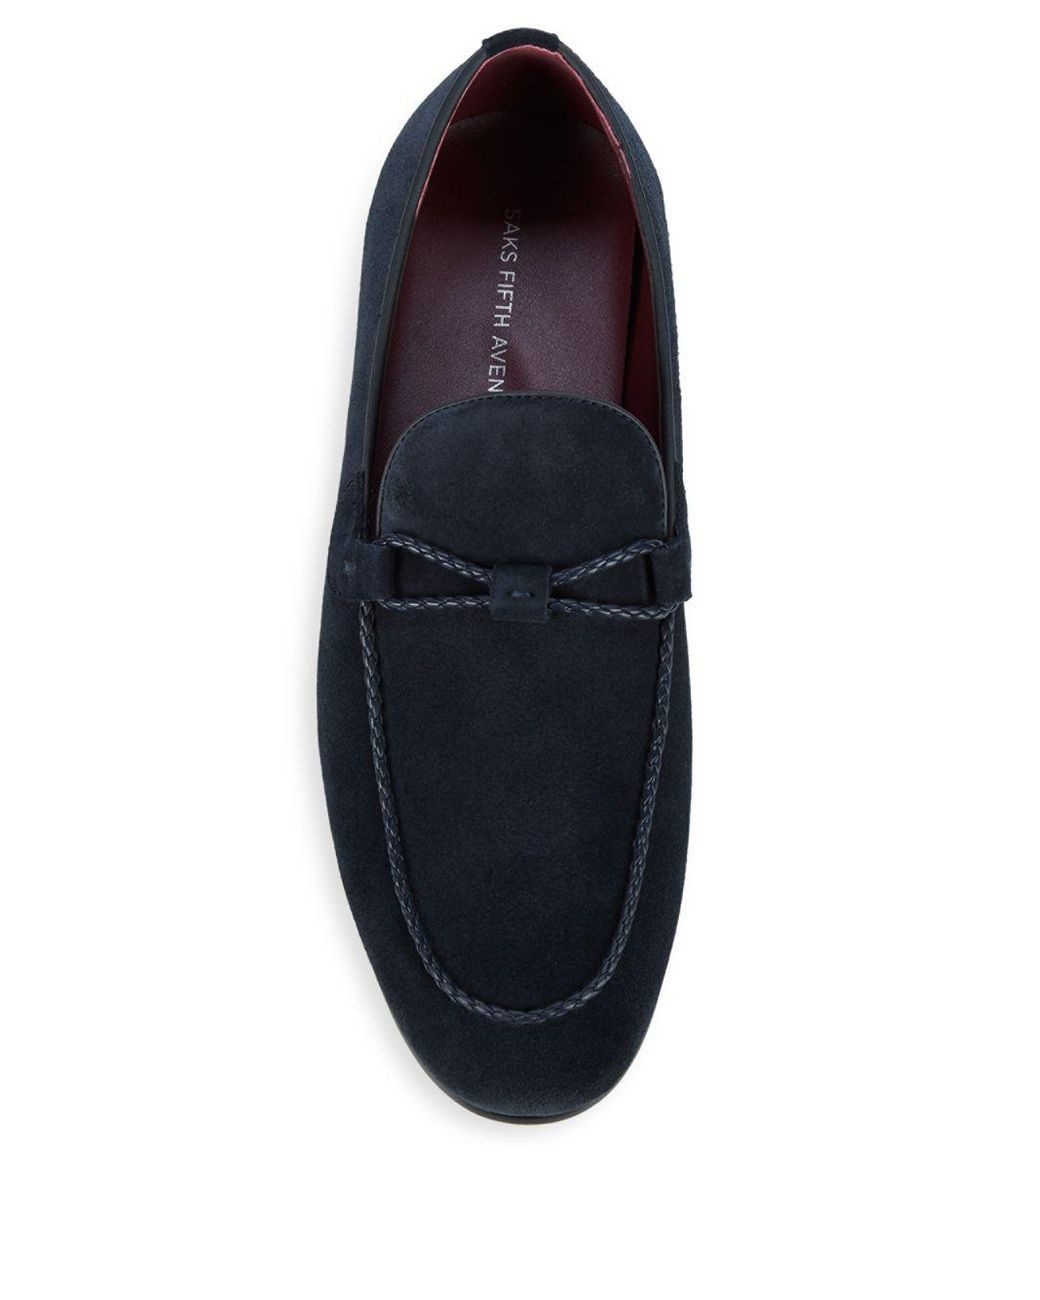 6a7a9003d73 Lyst - Saks Fifth Avenue Emidio Suede Loafers in Blue for Men